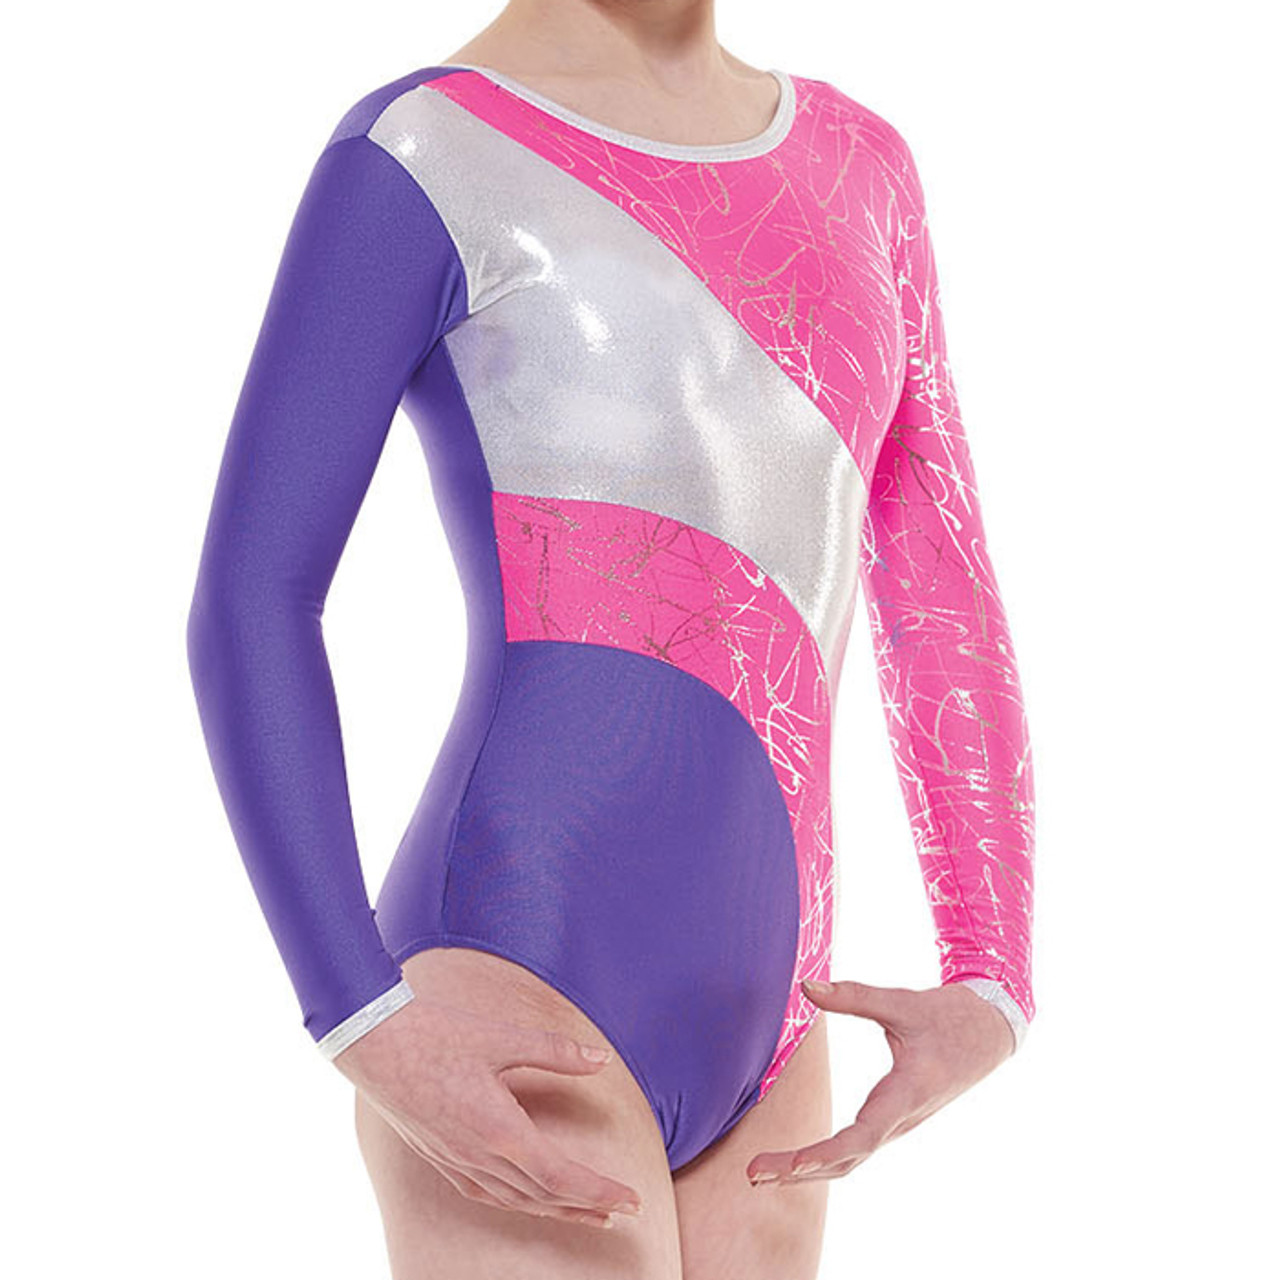 405b79127 TAPPERS   POINTERS GYM 38 CARNIVAL LEOTARD - 4 dance